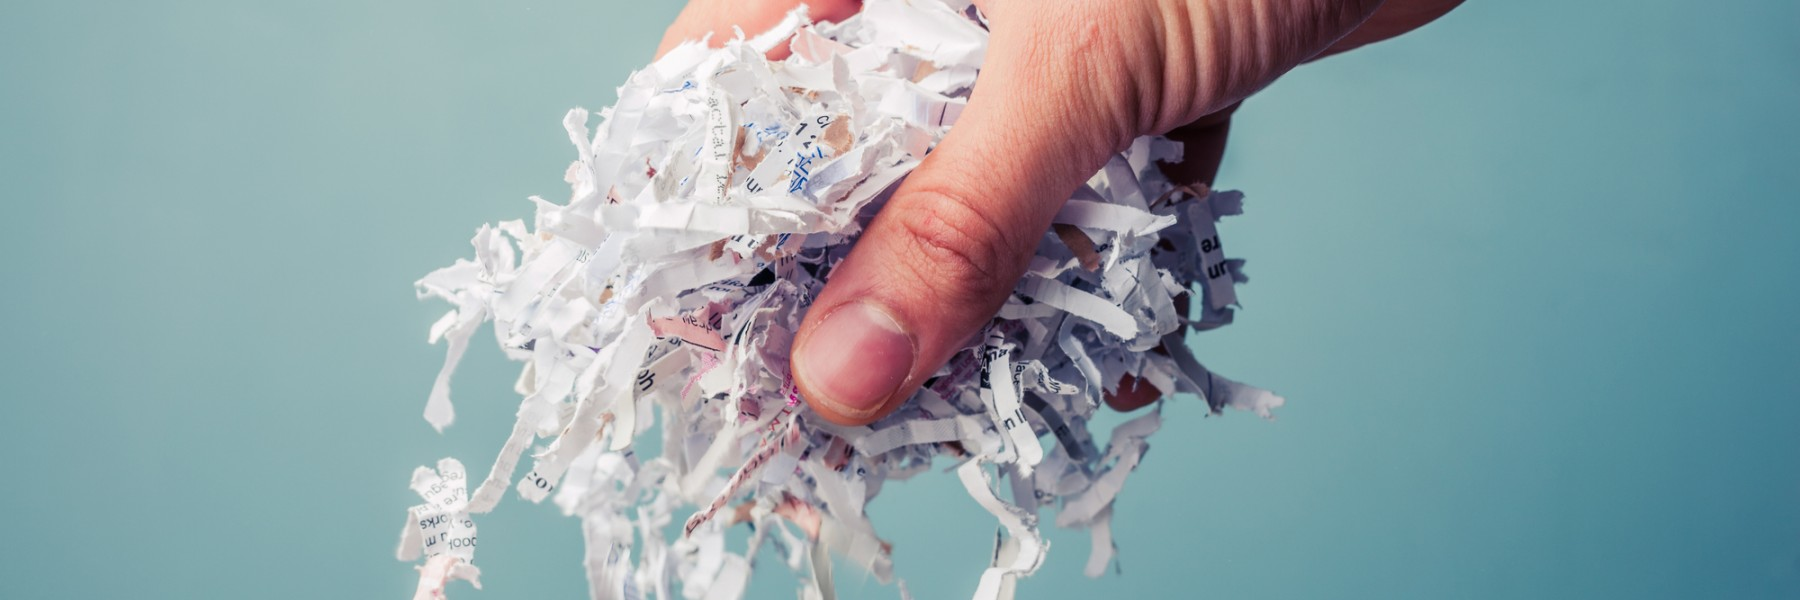 Document Shredding in Nashua NH